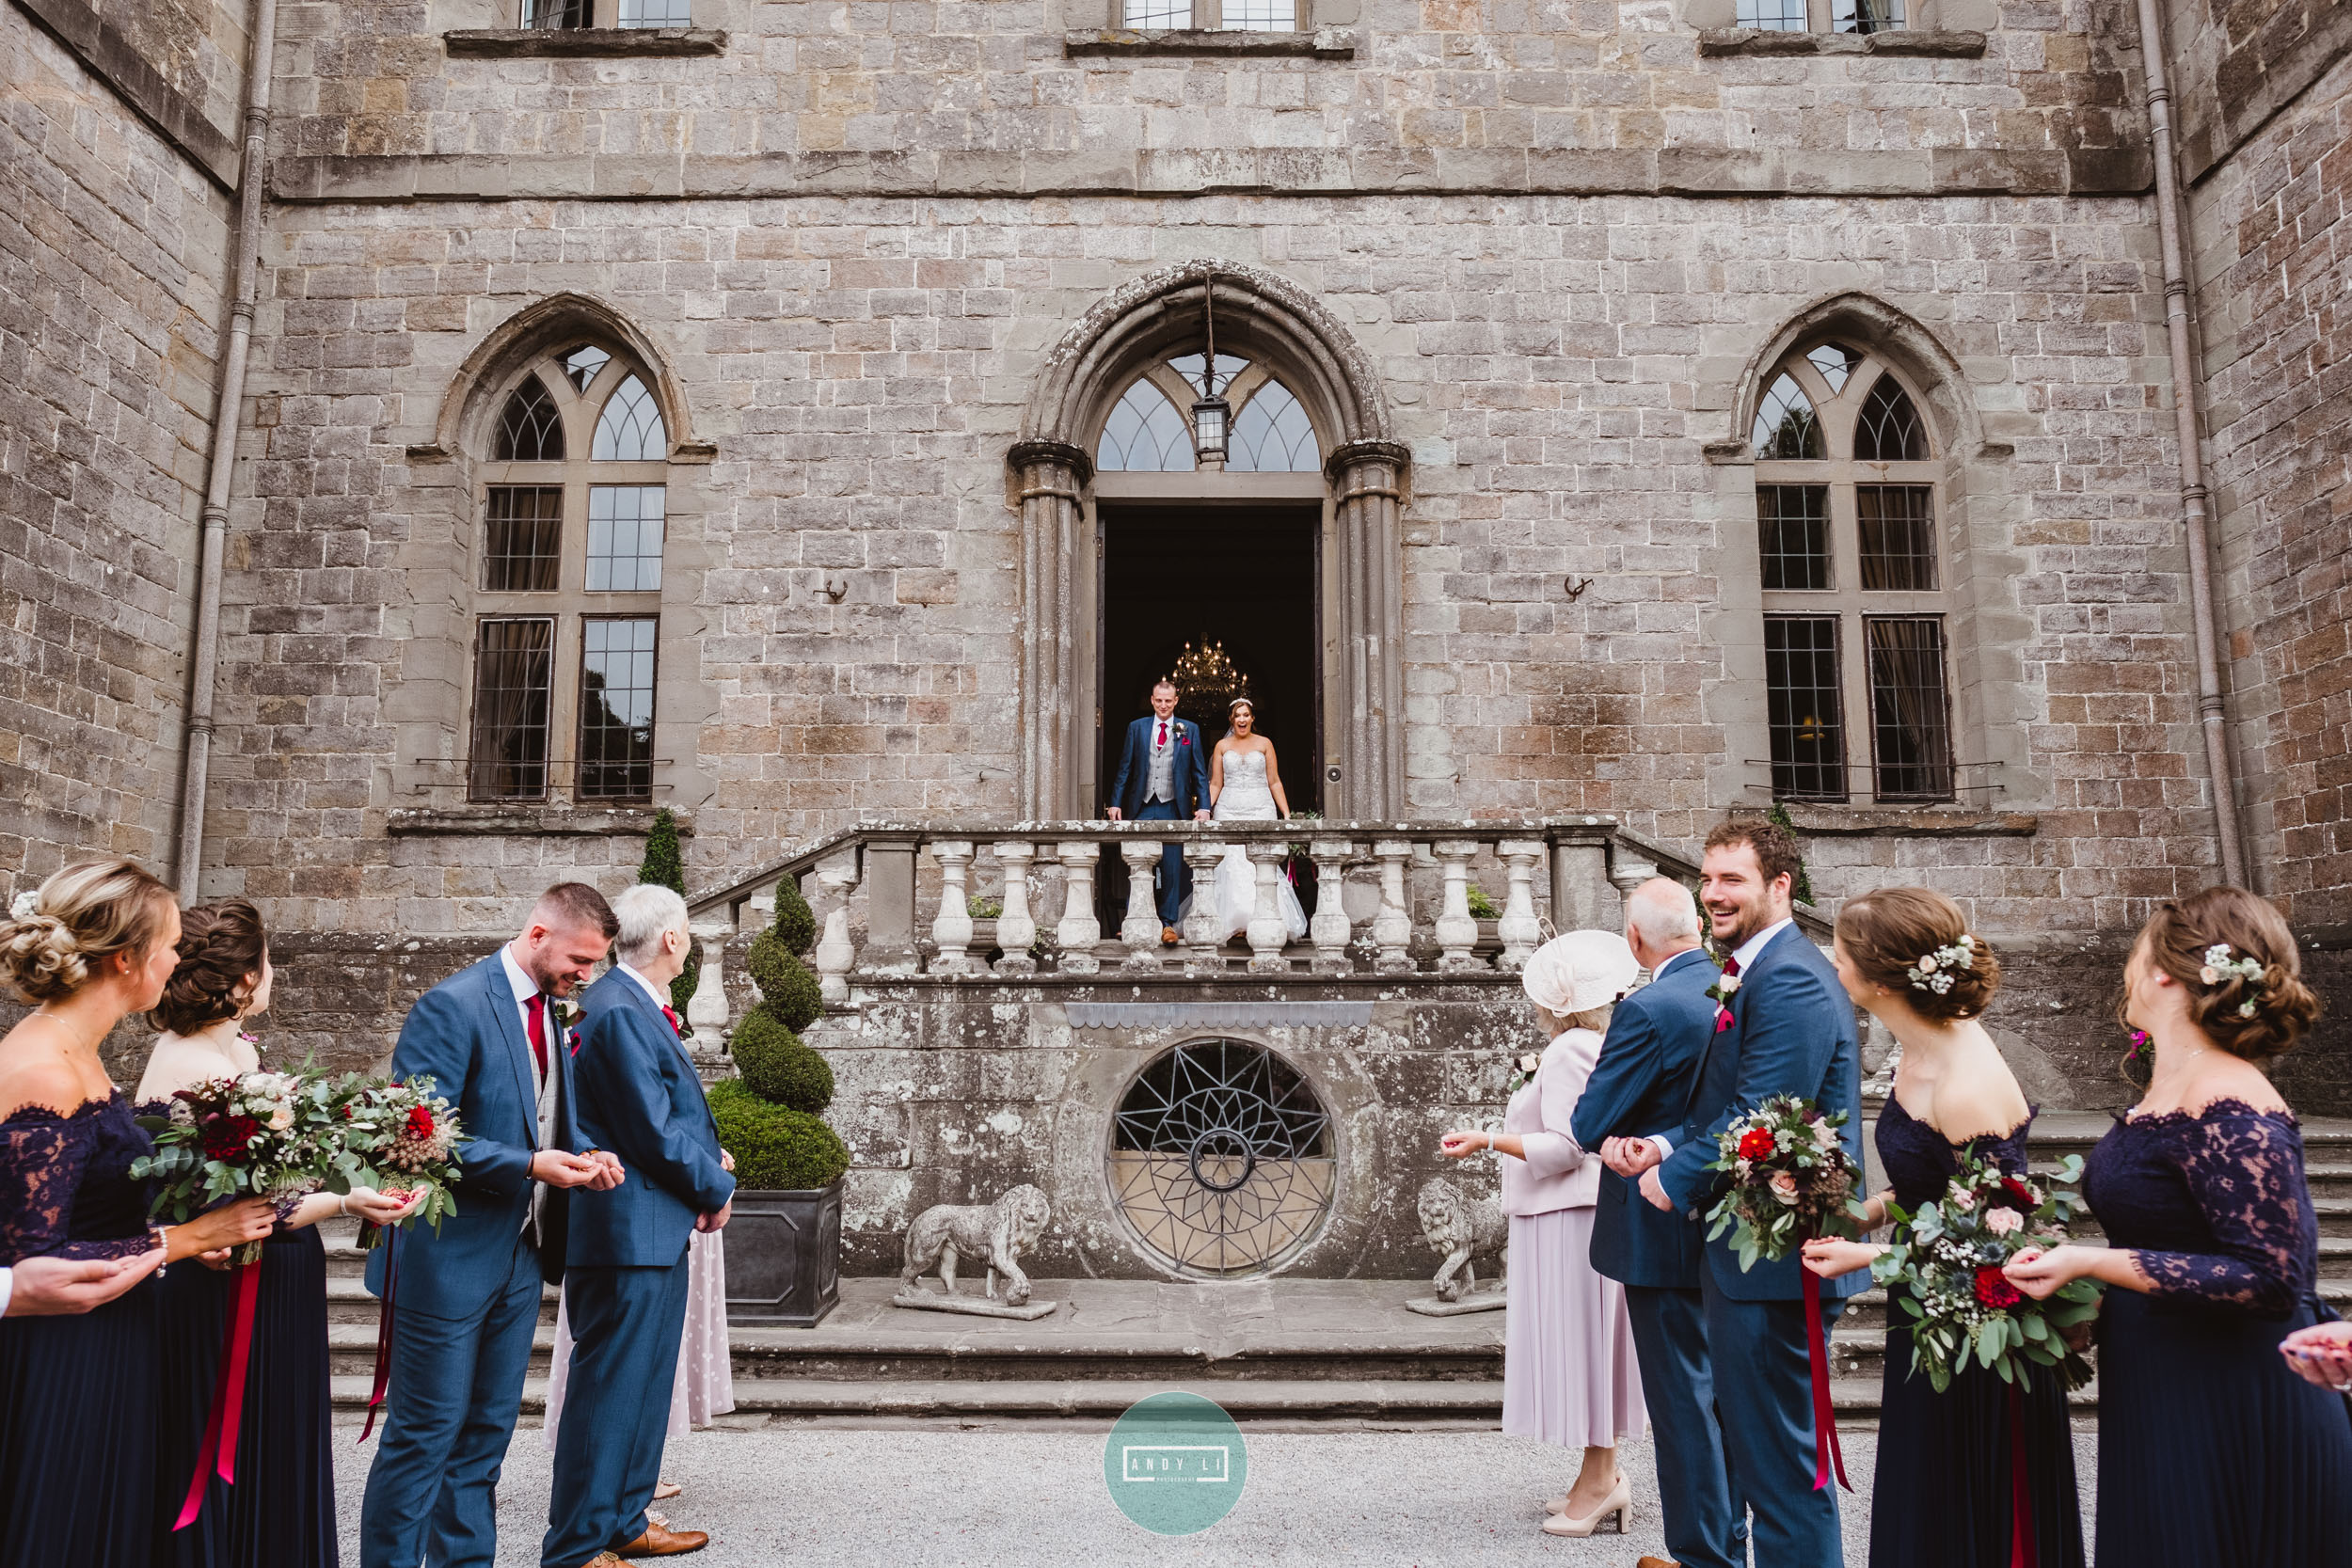 Clearwell Castle Wedding Photographer-073-XPRO3878.jpg